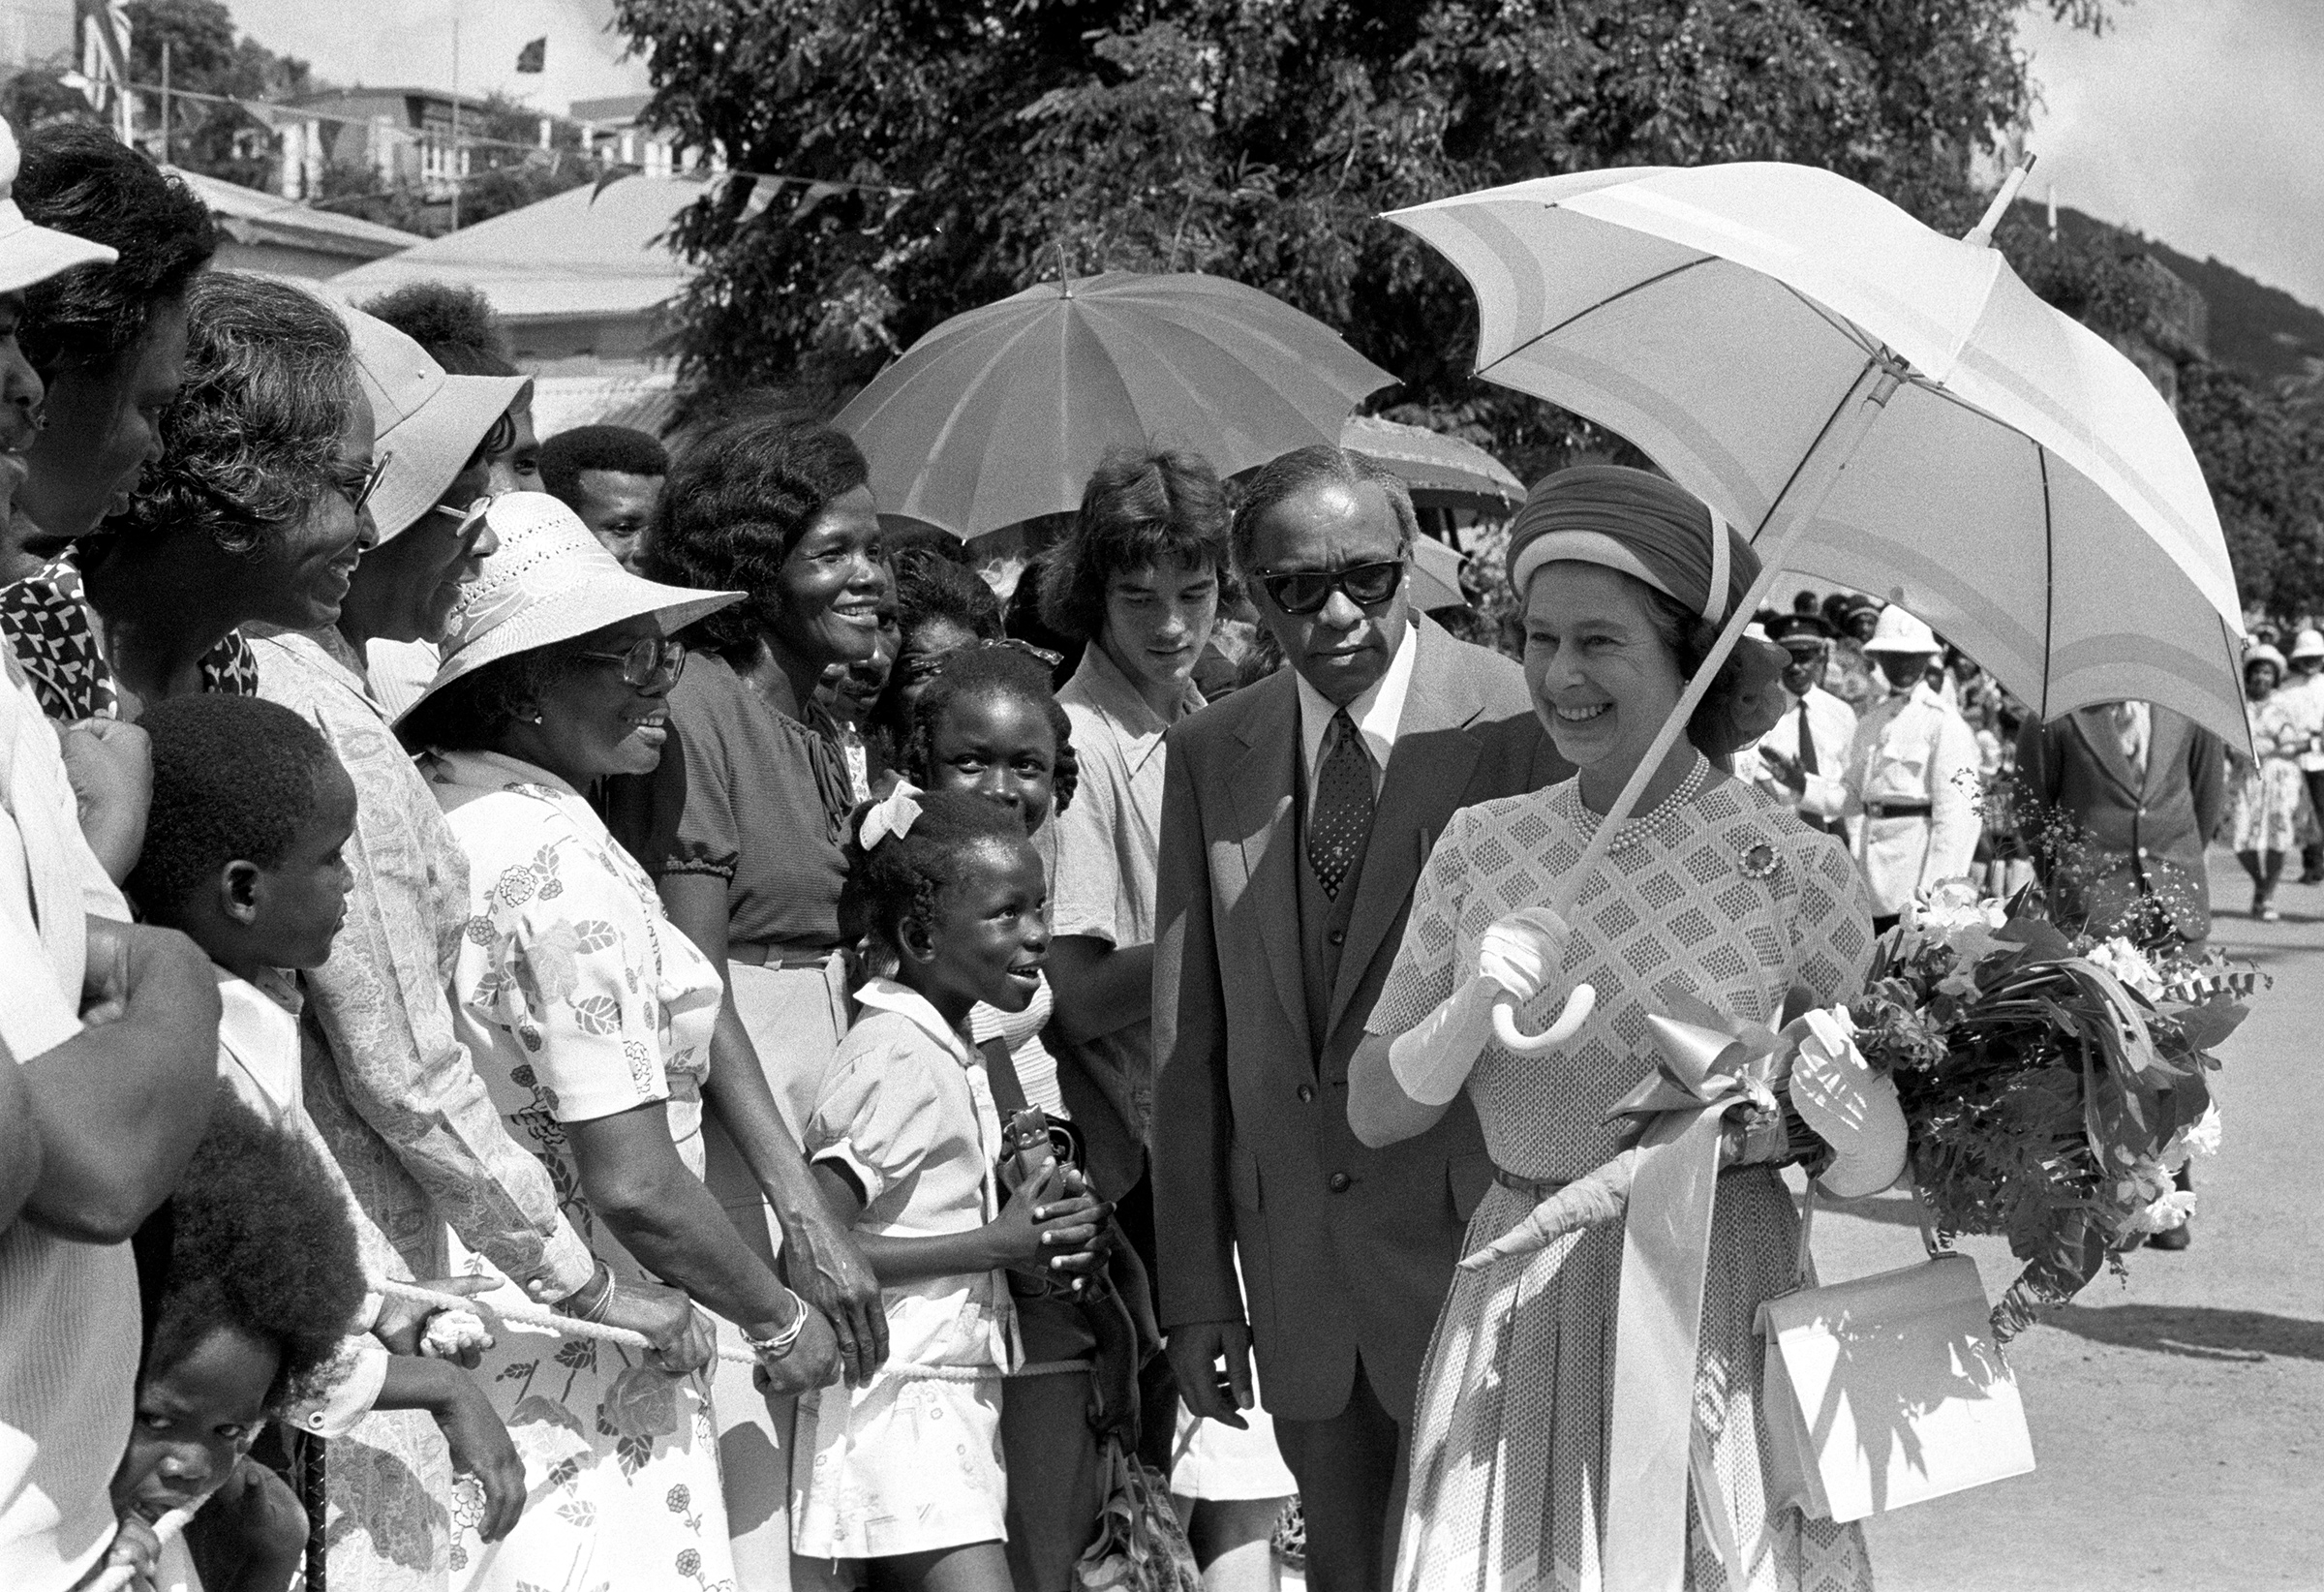 Queen Elizabeth II pauses for a word with local inhabitants in Tortola when she and the Duke of Edinburgh visited the British Virgin Islands as part of the Silver Jubilee tour of the West Indies, Oct. 1977